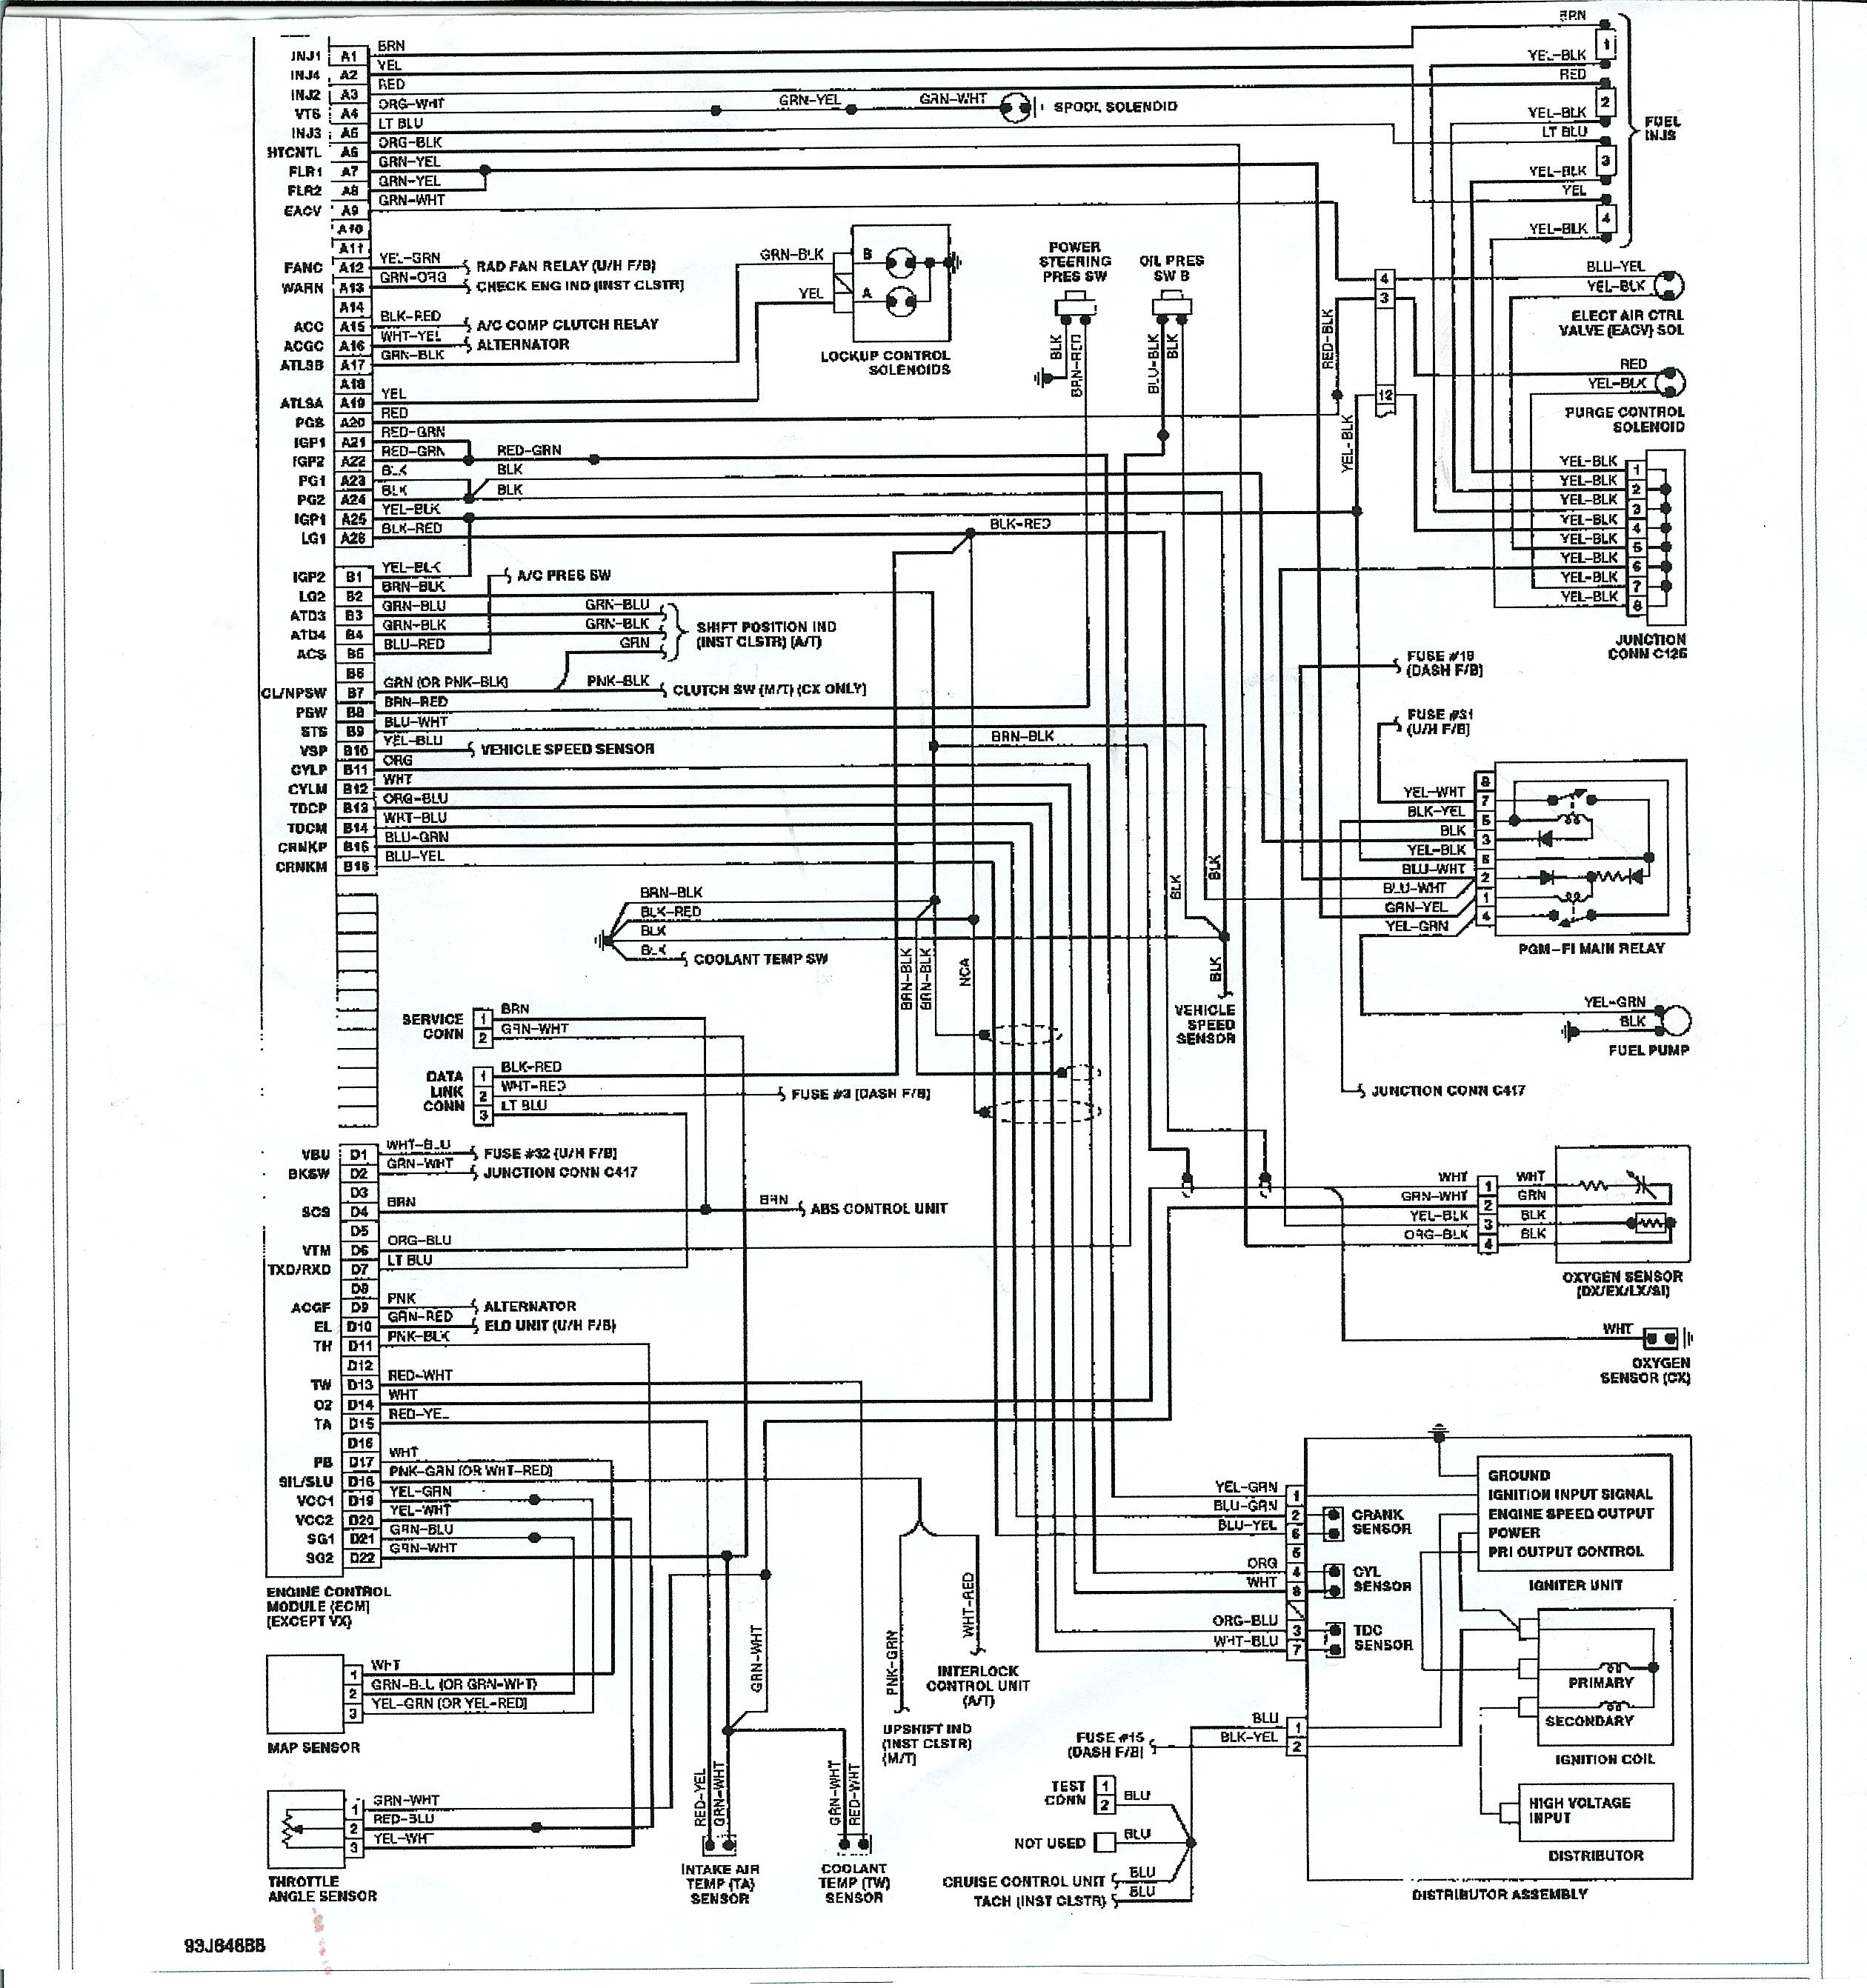 403660d1445082998 integra tcm wiring schematic auto swap dxecu diagrams 10001383 1994 acura integra wiring diagram 1996 94 Integra GSR at bayanpartner.co